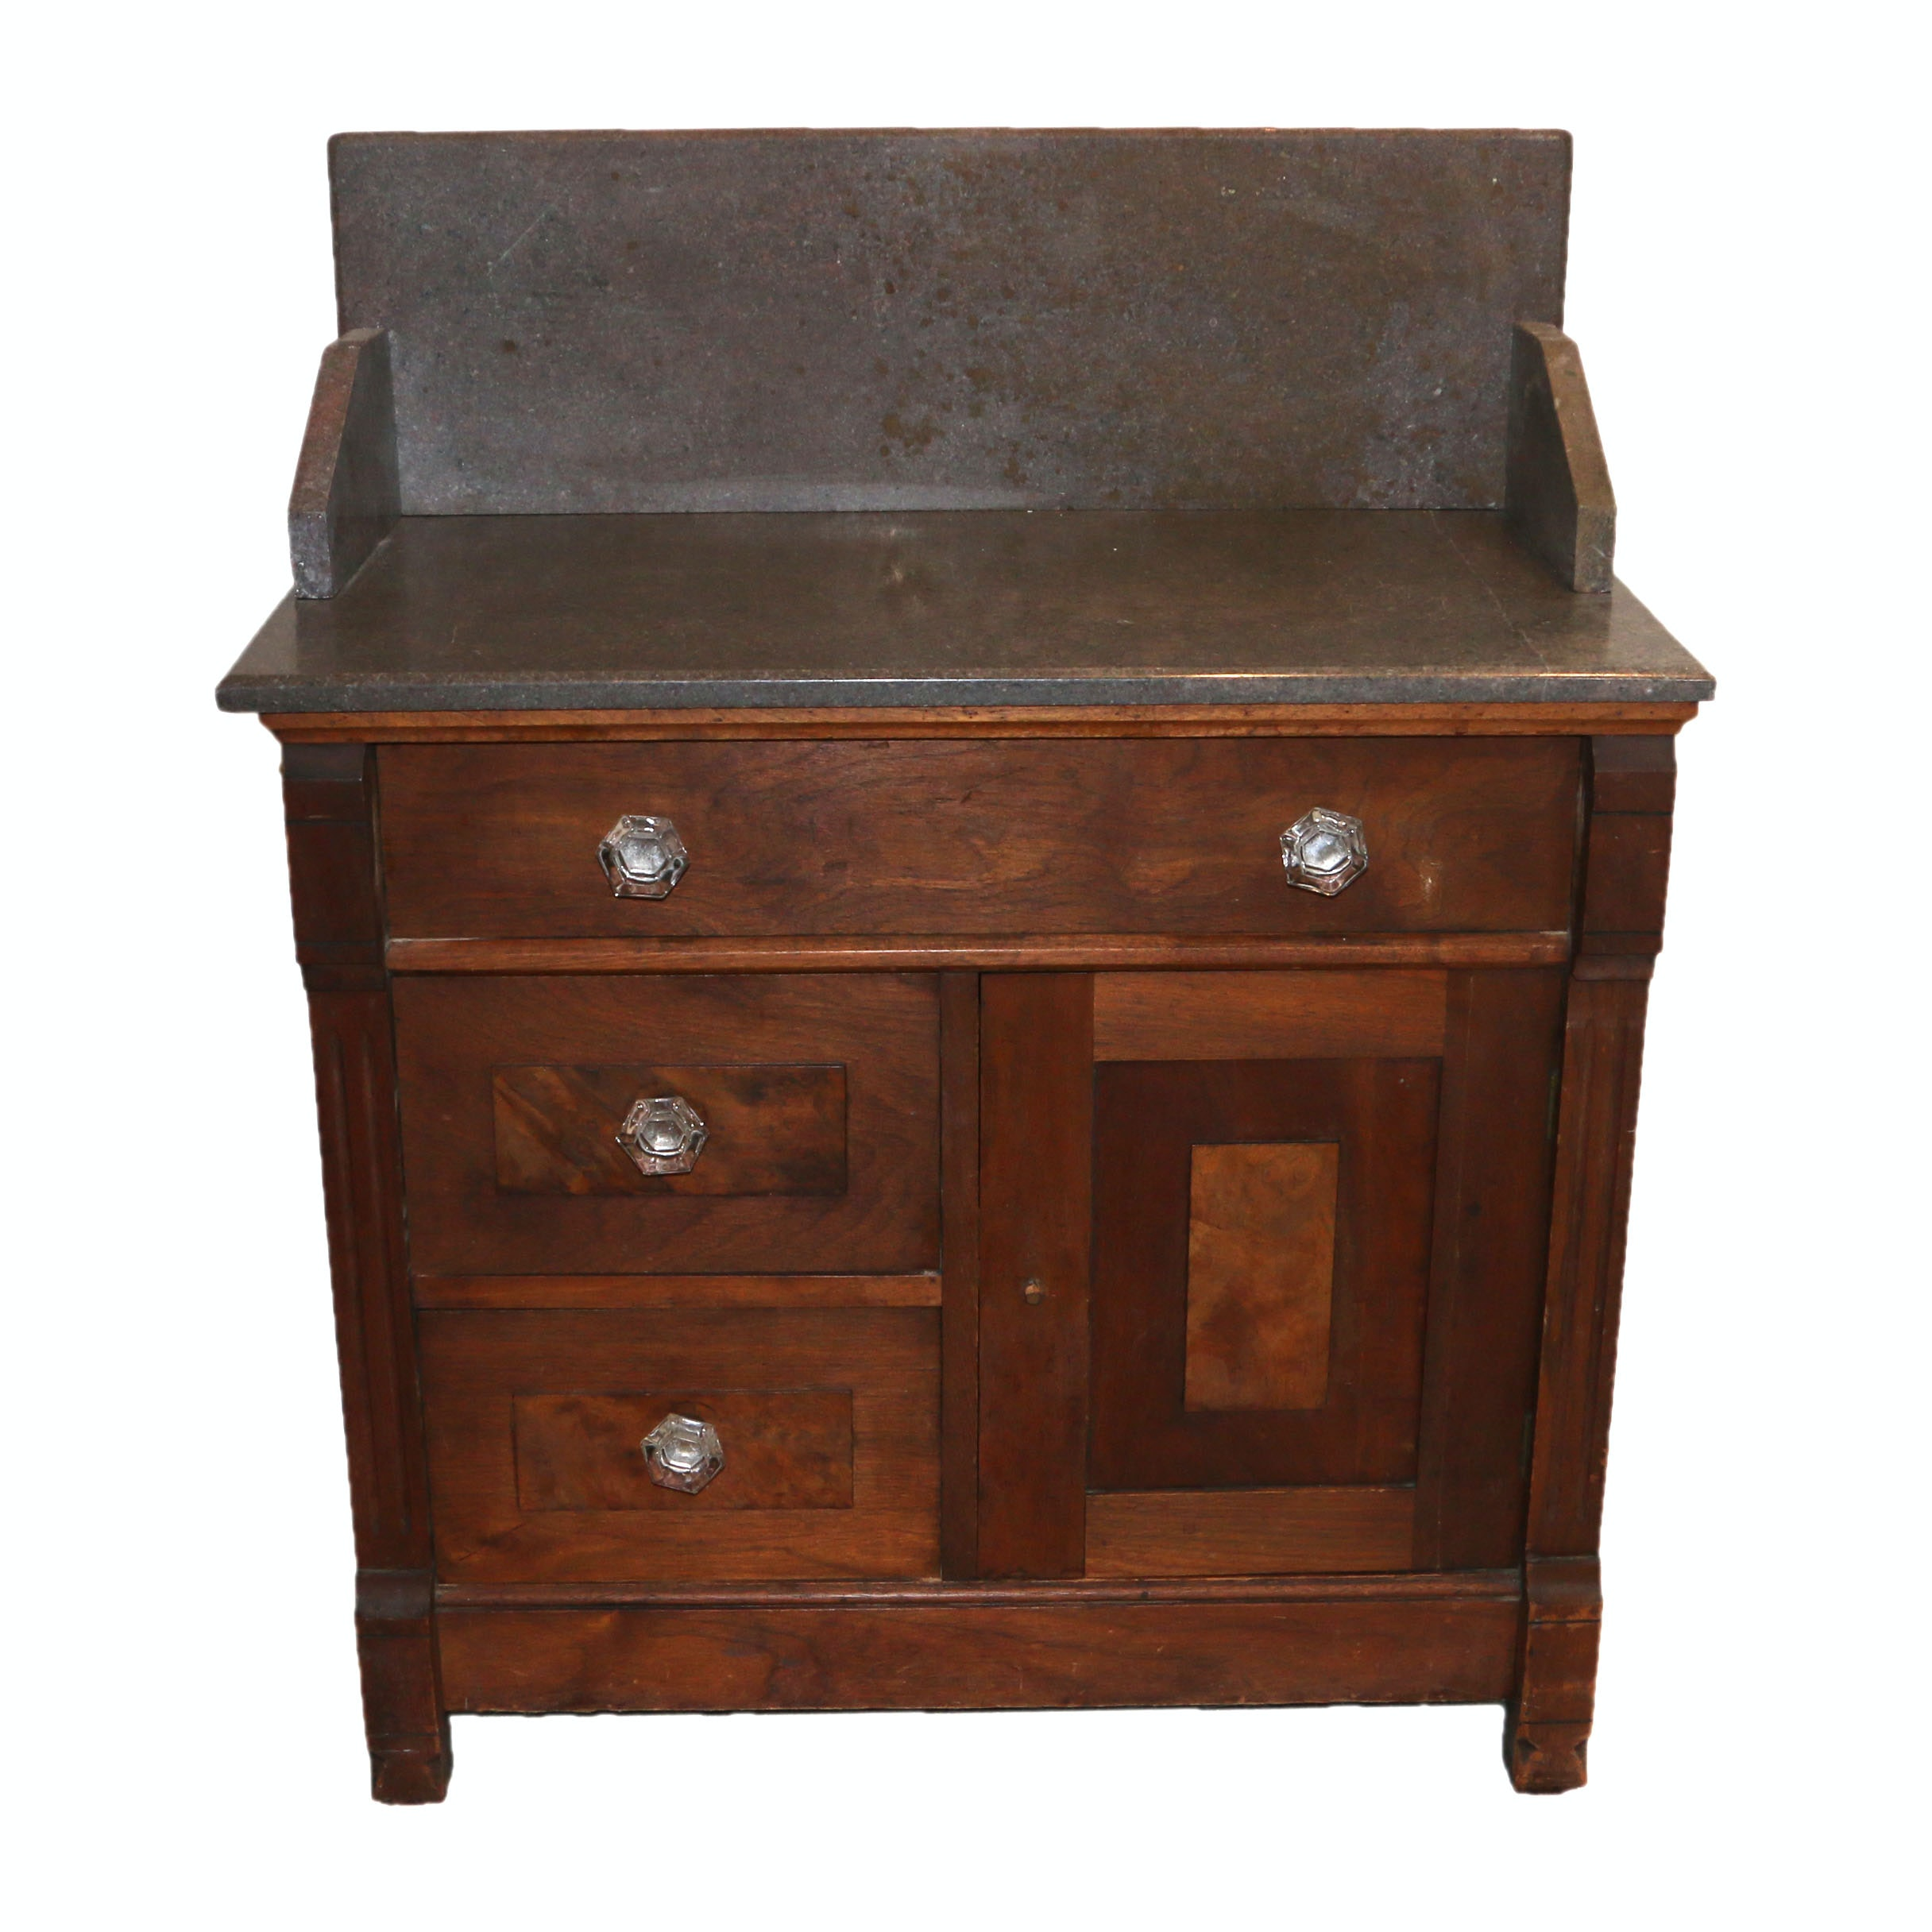 Antique Eastlake Style Walnut Wash Stand with Stone Top